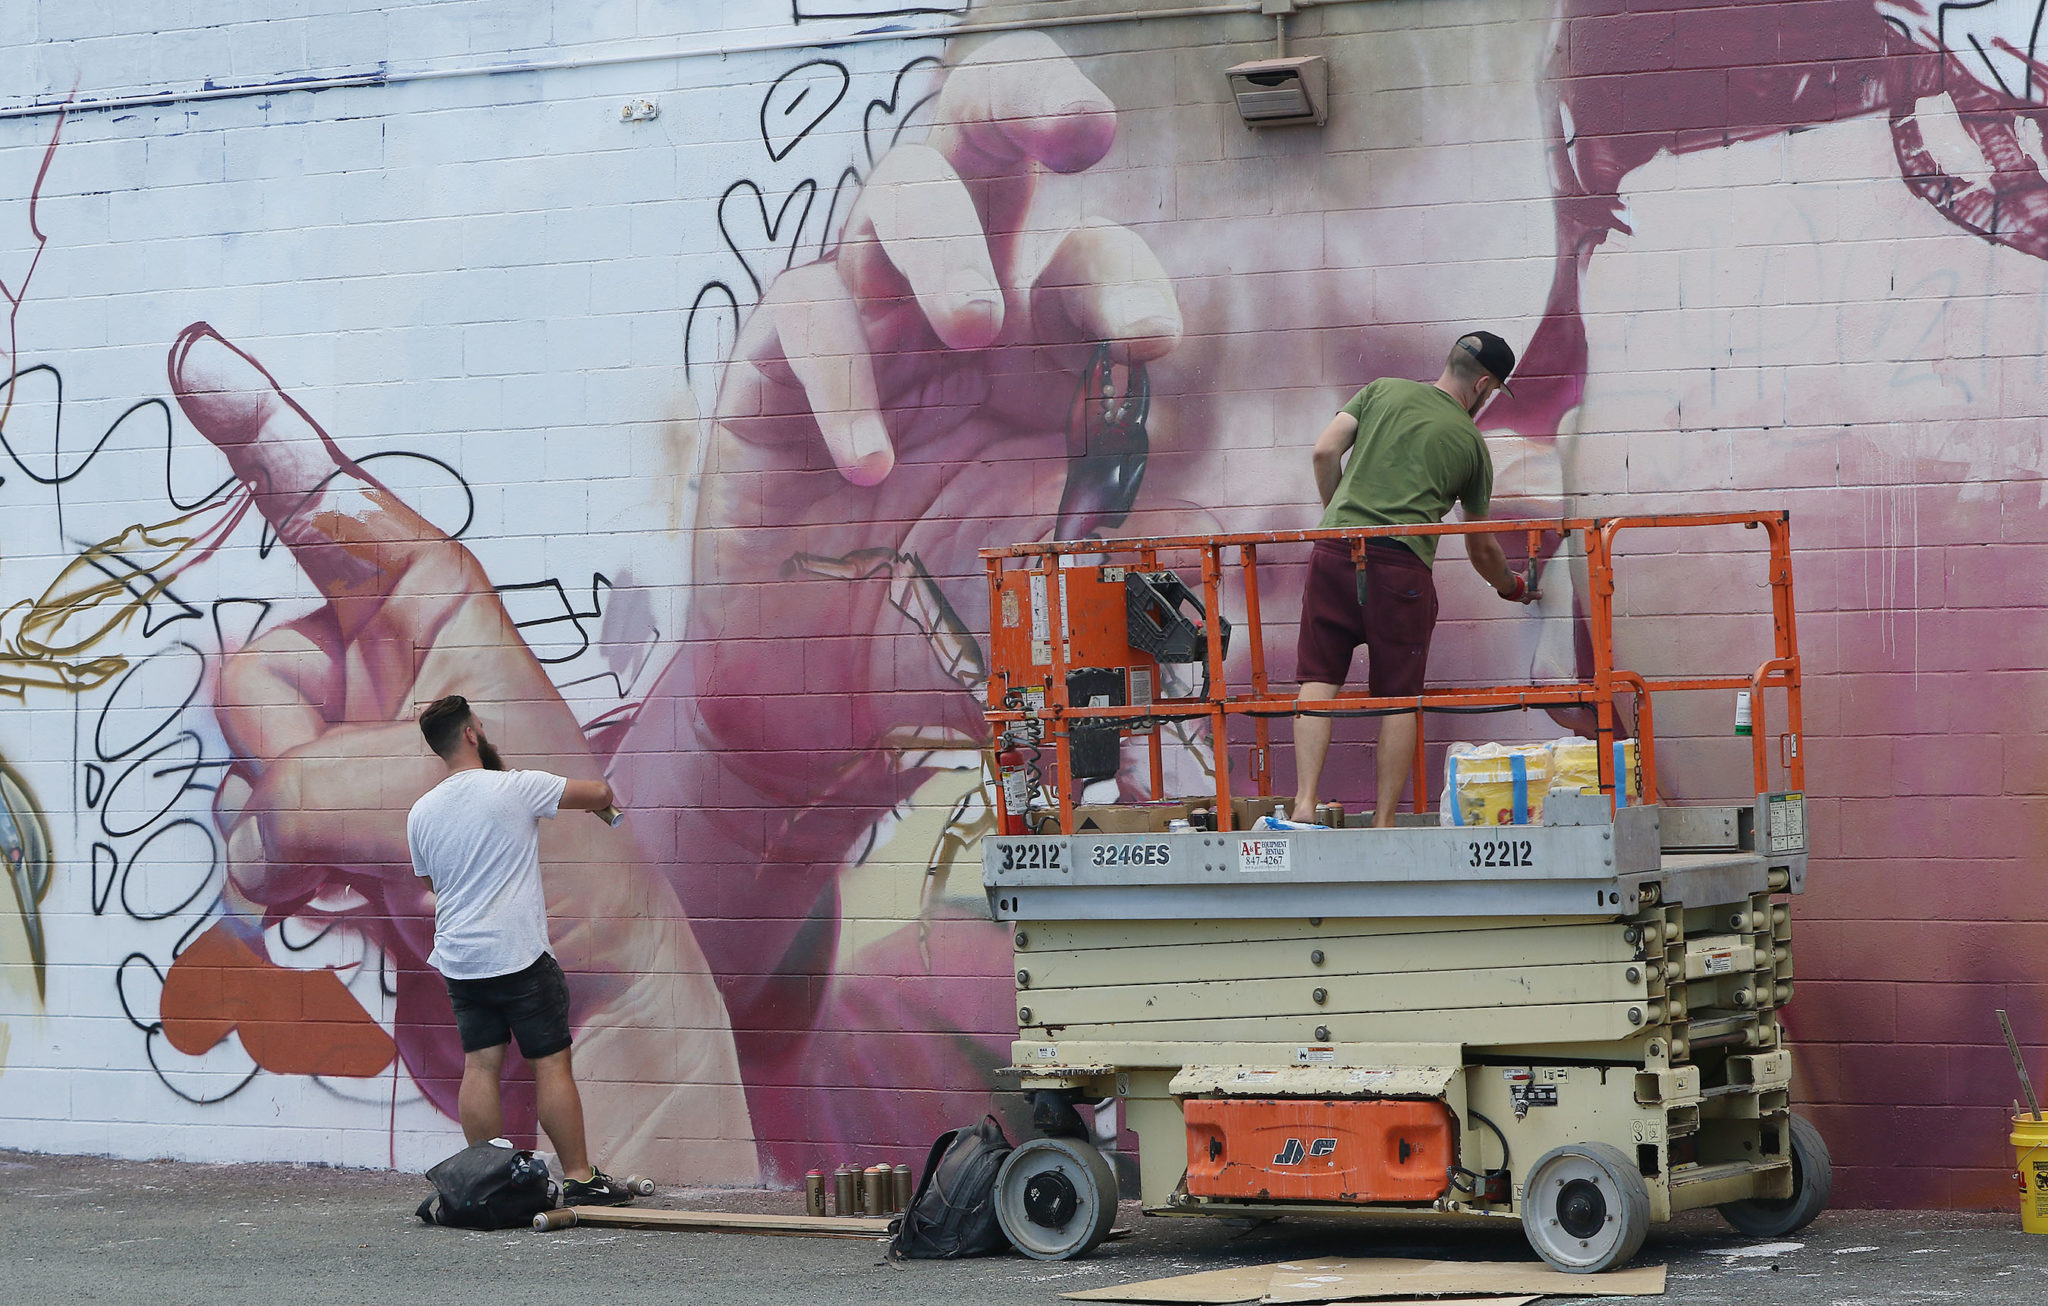 <p>The artists known as Telmo Miel (Telmo Pieper and Miel Krutzmann) from Holland work on two levels near Auahi and Koula streets.</p>